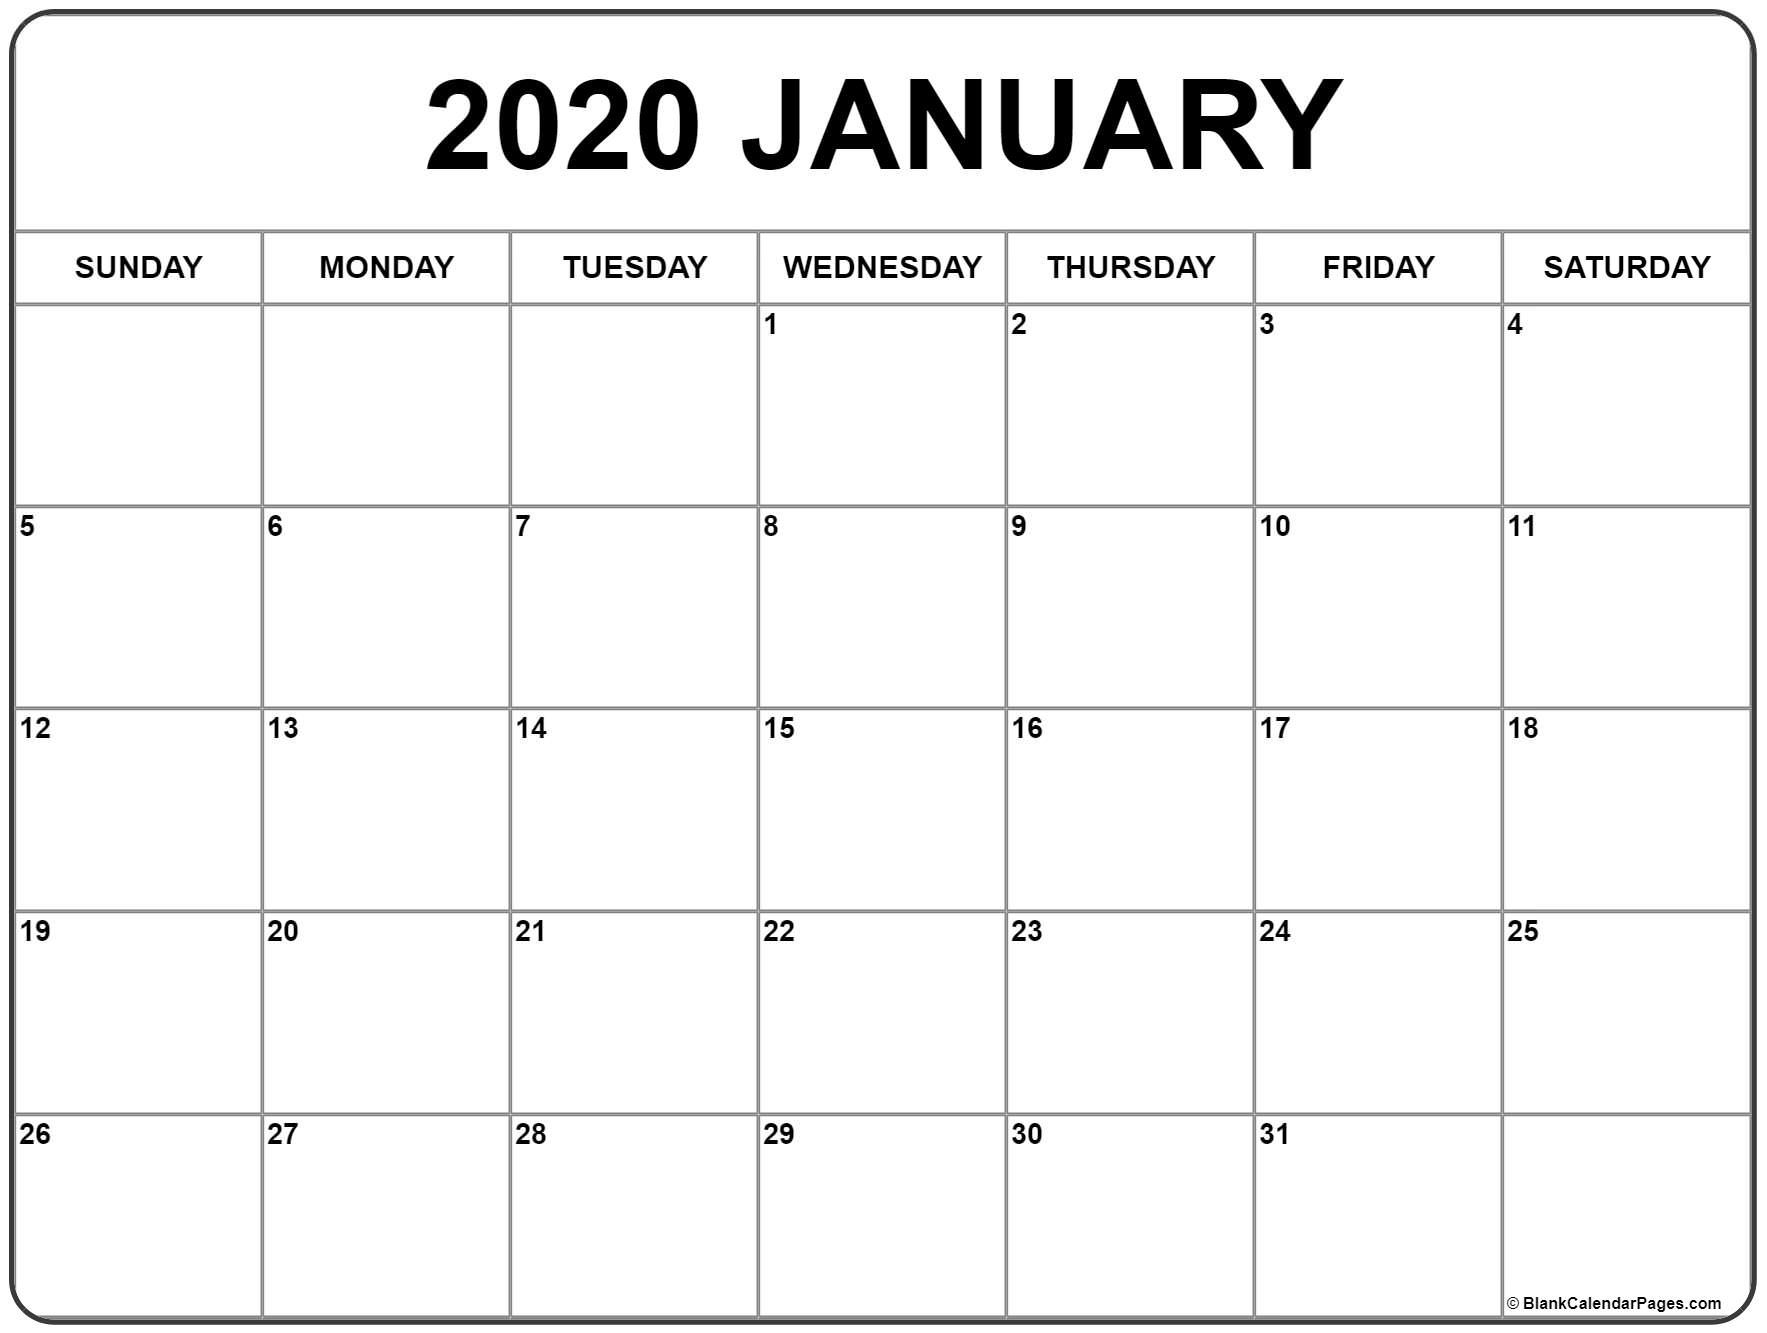 January 2020 Calendar | Free Printable Monthly Calendars inside Printable Monthly Calendar